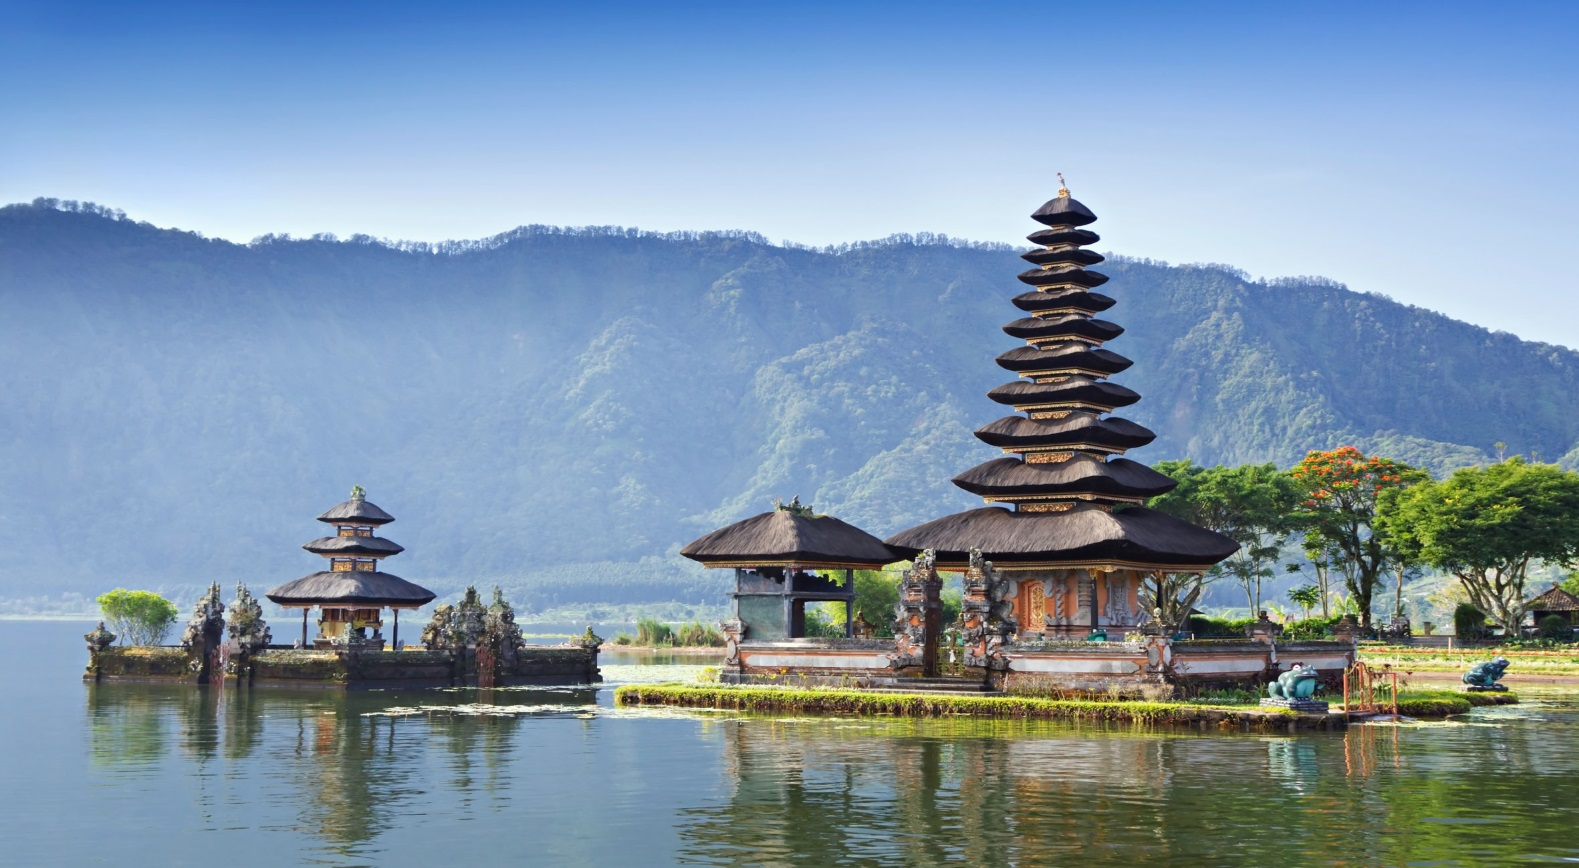 Tour Companies Make Sure You Miss Nothing Important While In Bali